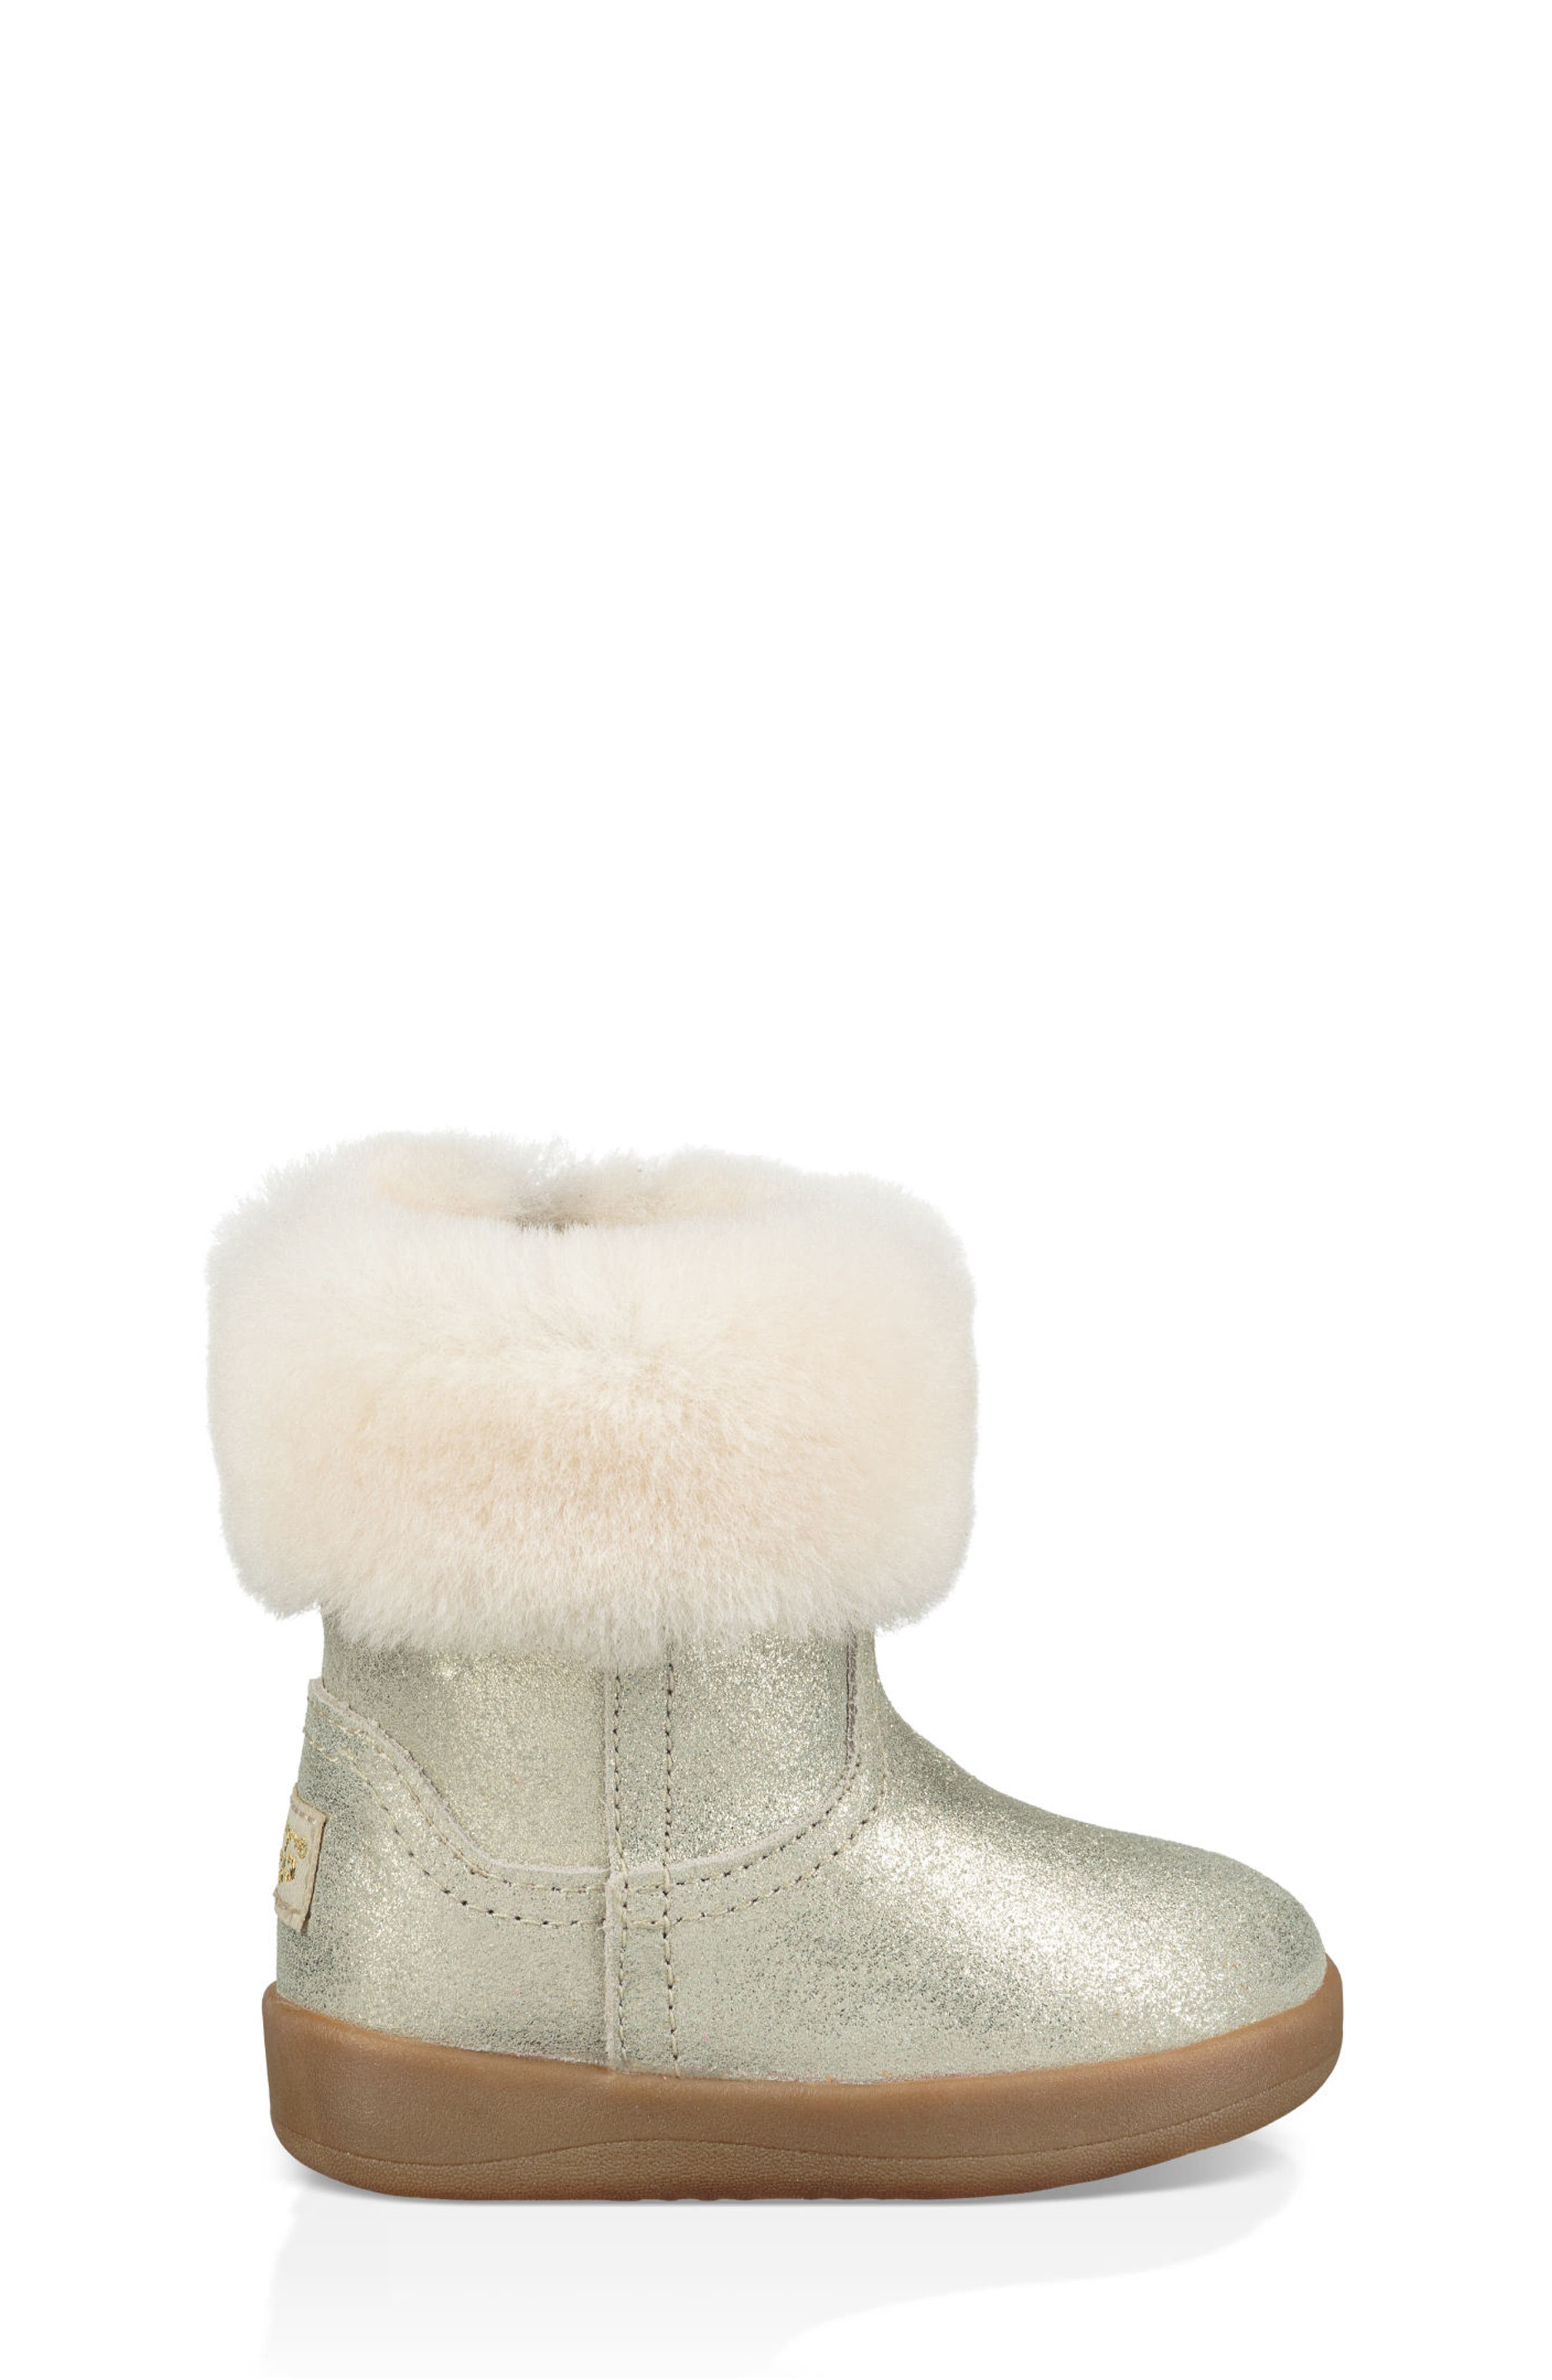 UGG<SUP>®</SUP>, Jorie II Metallic Genuine Shearling Boot, Alternate thumbnail 3, color, GOLD